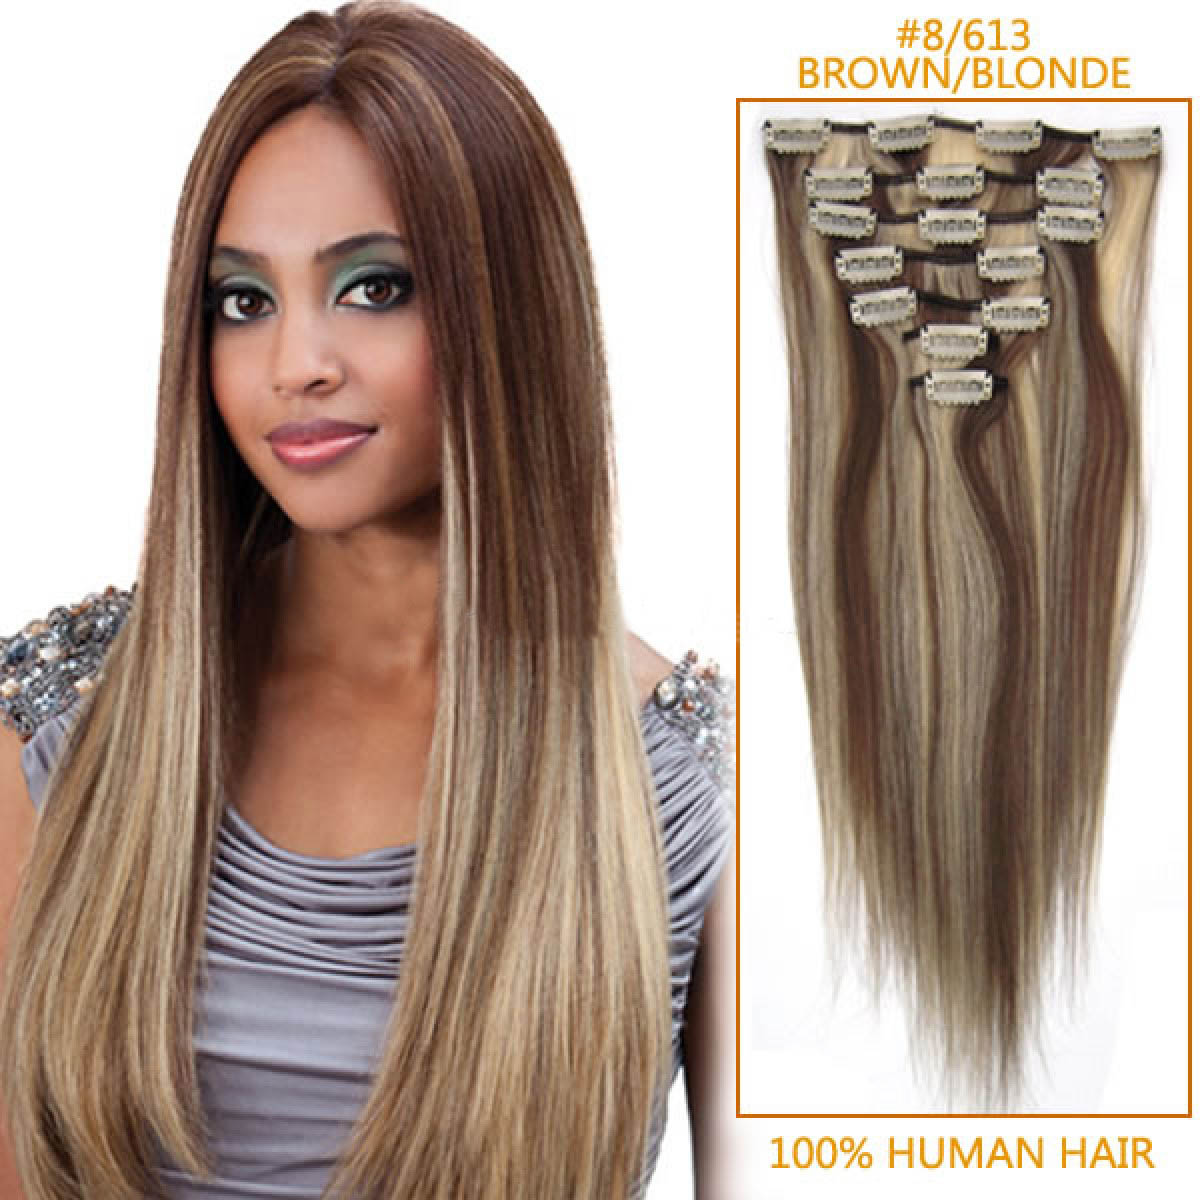 24 Inch 8613 Brownblonde Clip In Human Hair Extensions 8pcs